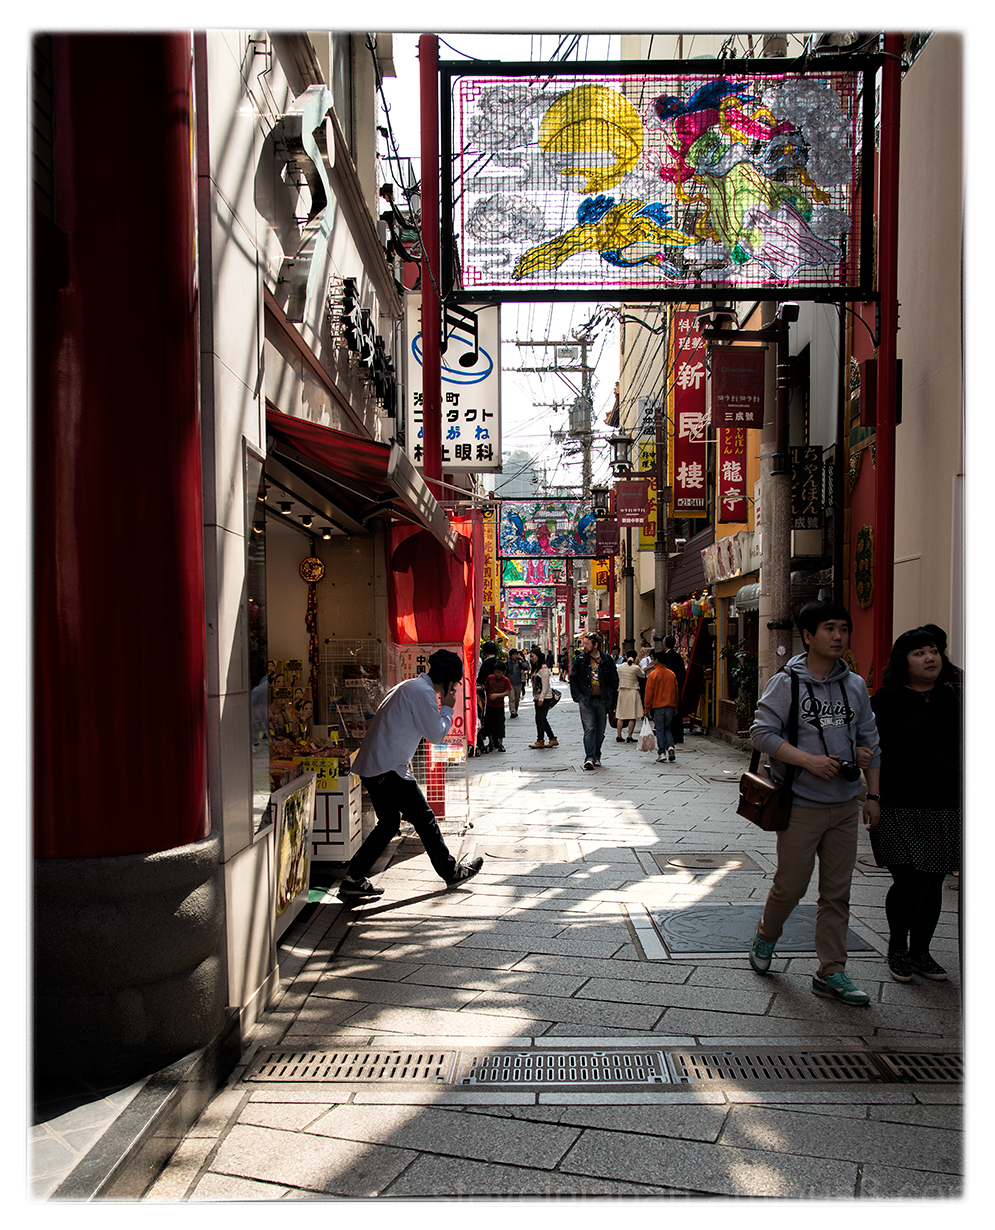 A shopping street in Nagasaki's chinatown.